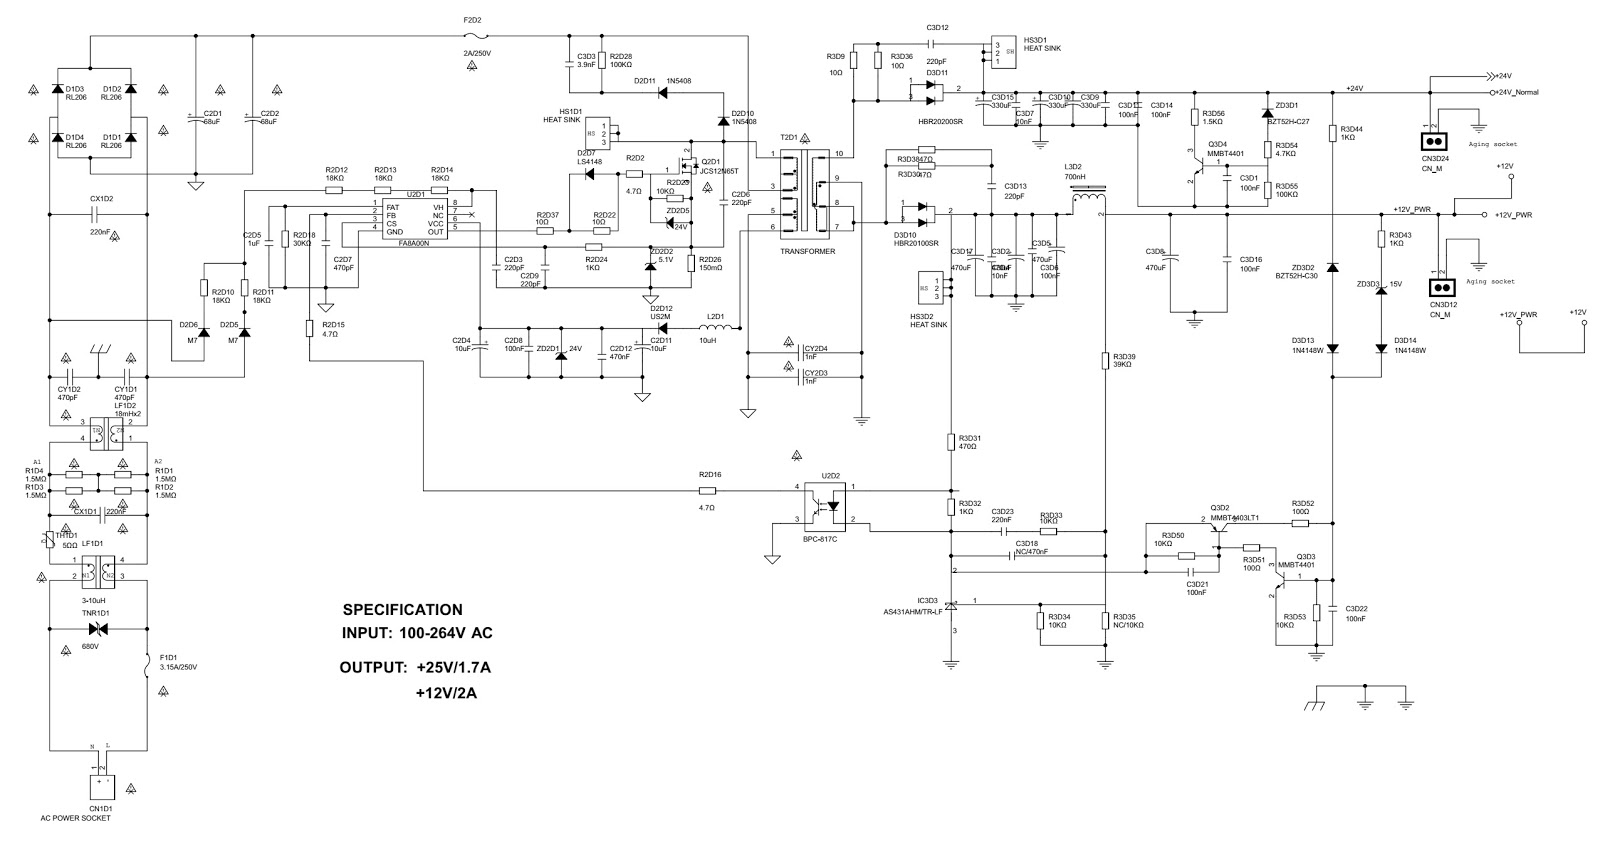 Unusual Smps Schematic Pictures Inspiration - Electrical Circuit ...